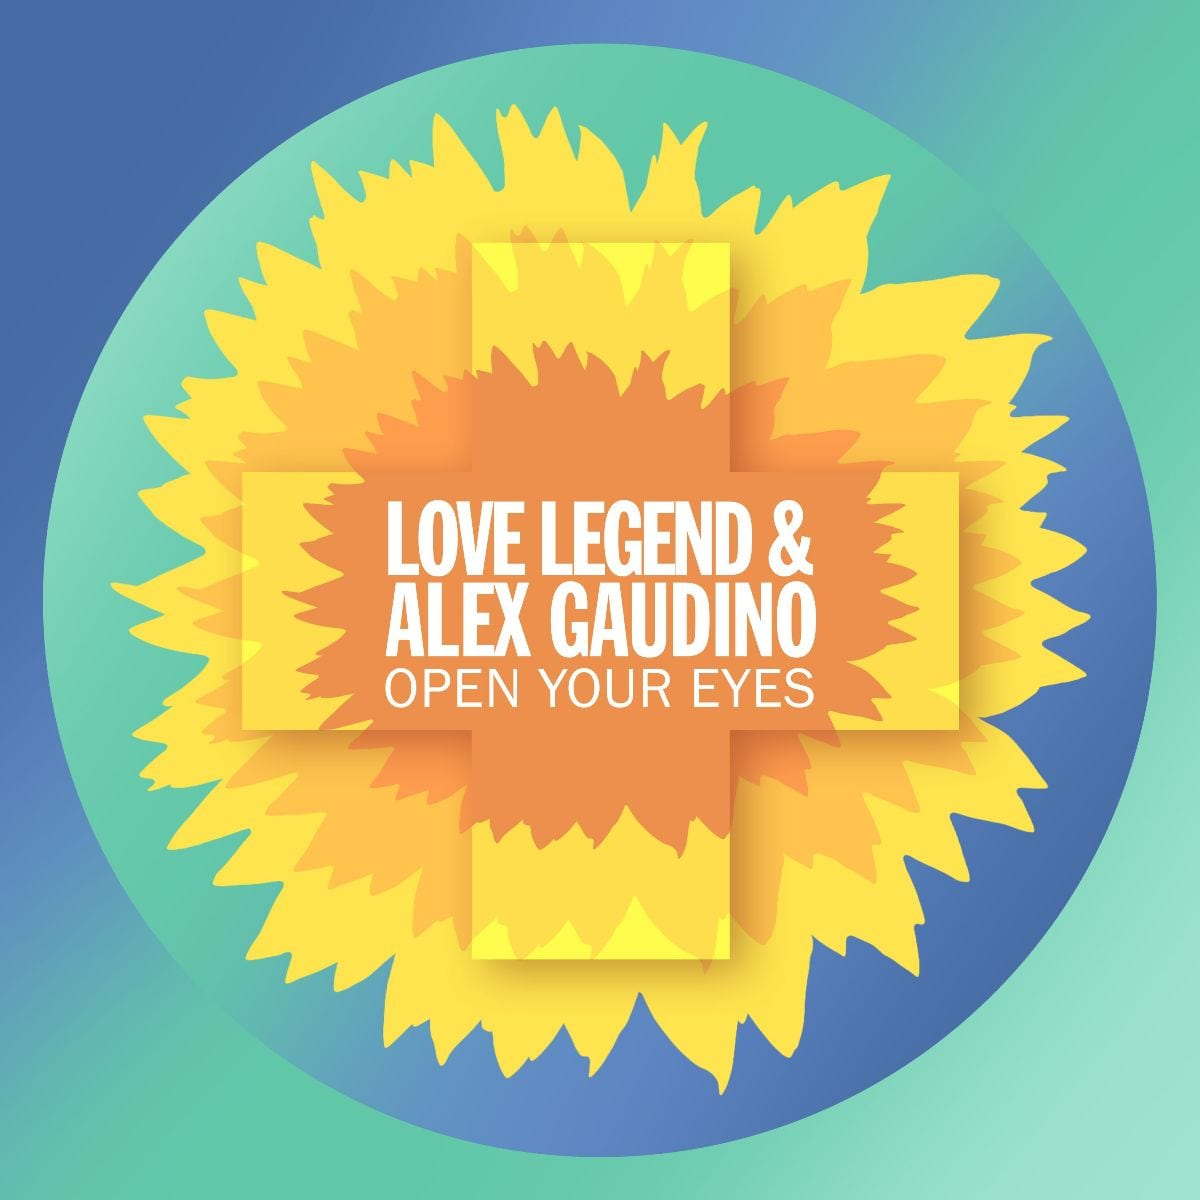 Love Legend & Alex Gaudino join forces on new single 'Open Your Eyes' |  IhouseU.com